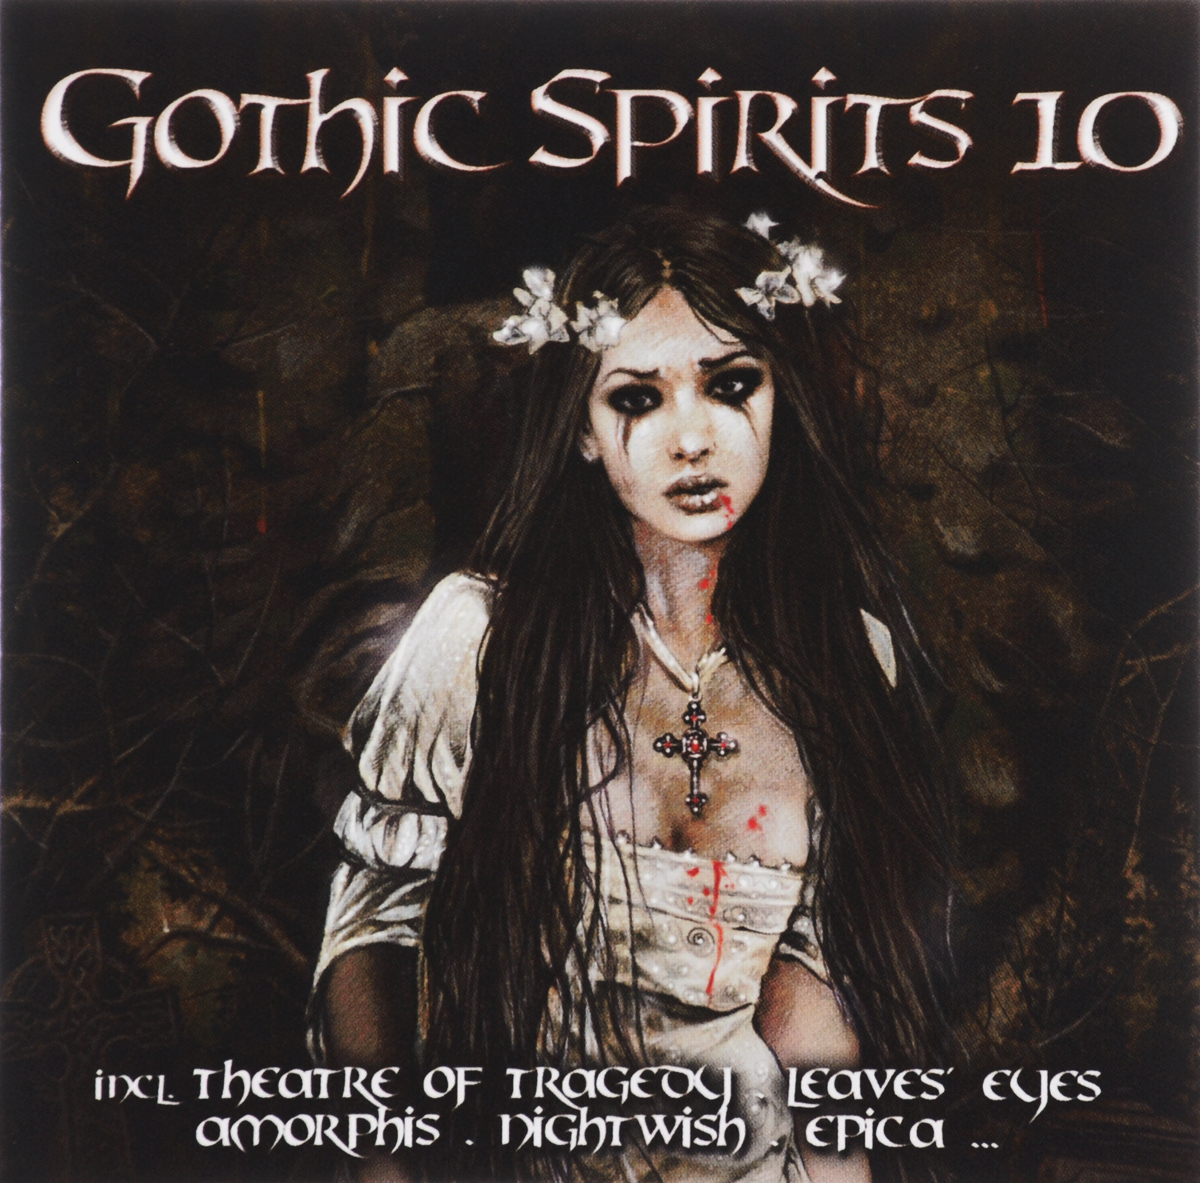 Epica,Theatre of Tragedy,Sirenia,Leaves' Eyes,Saltatio Mortis,Trail Of Tears,The Raven,Megaherz,Deathstars,Mono Inc.,The 69 Eyes,Amorphis,Paradise Lost,Lacuna Coil,Delain,Krypteria,Dark The Suns,Dope Stars Inc.,Lacrimosa,In This Moment Gothic Spirits 10 (2 CD) mono inc hamburg